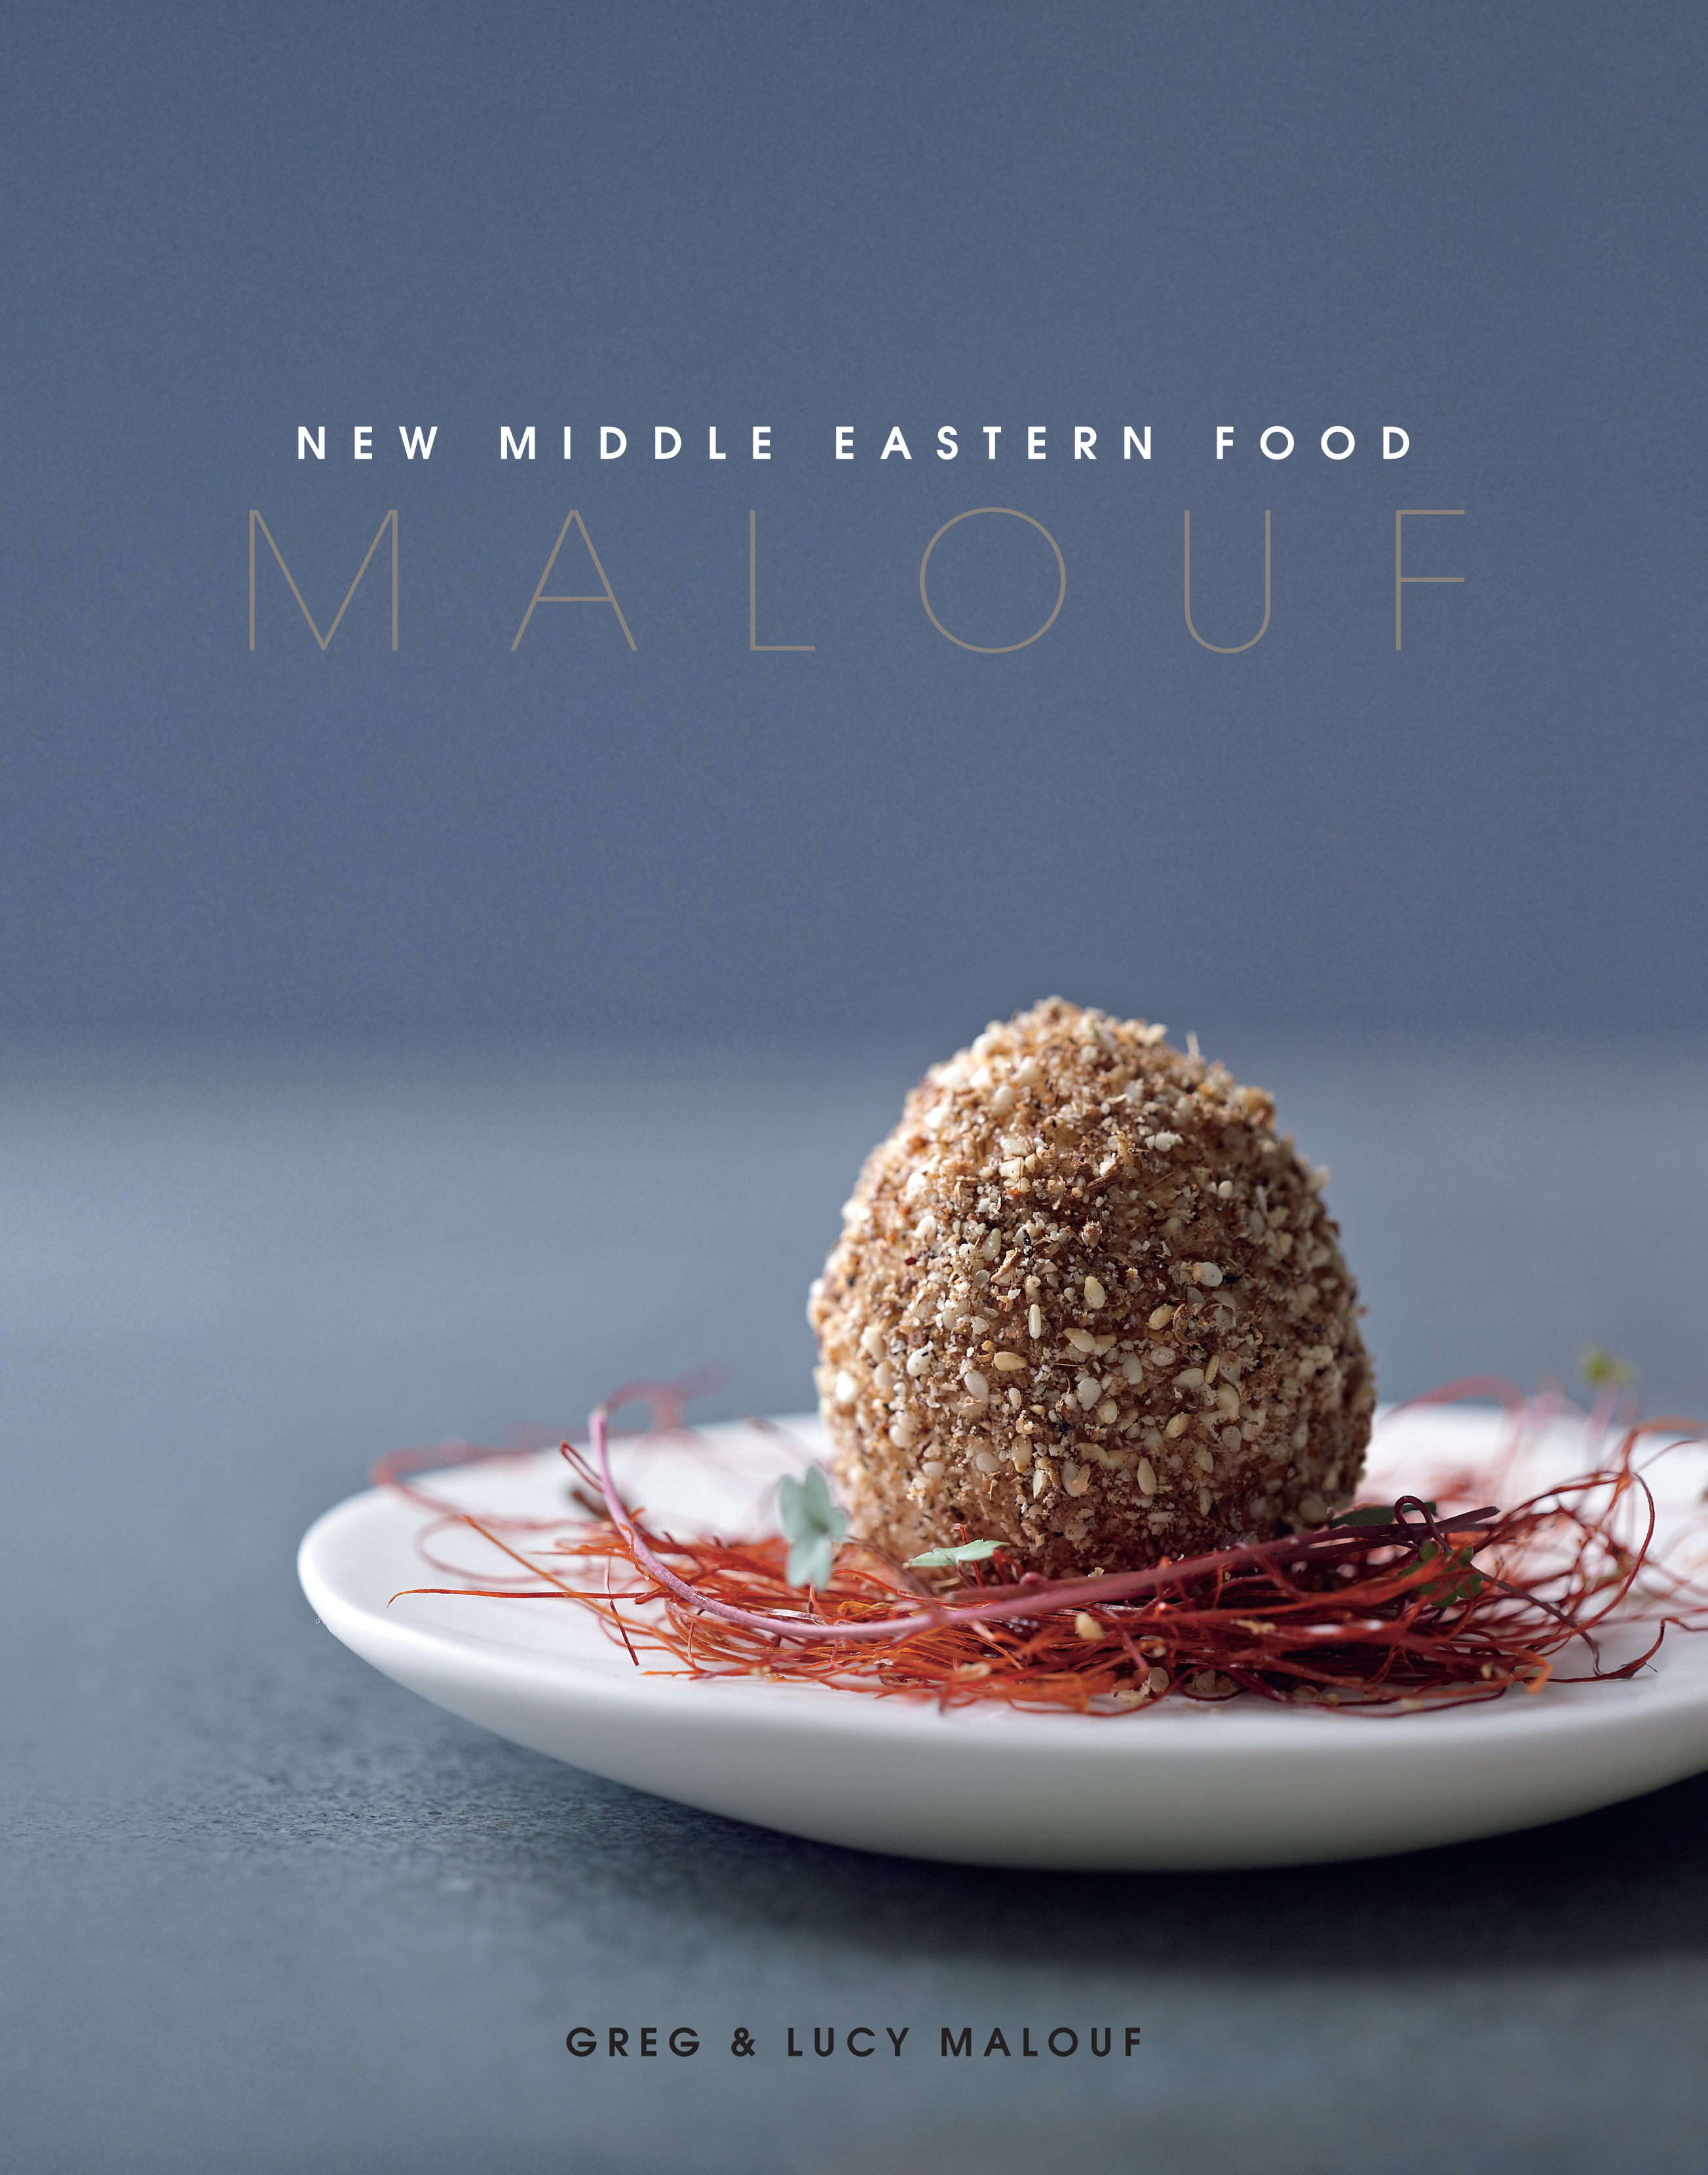 New Middle Eastern Food